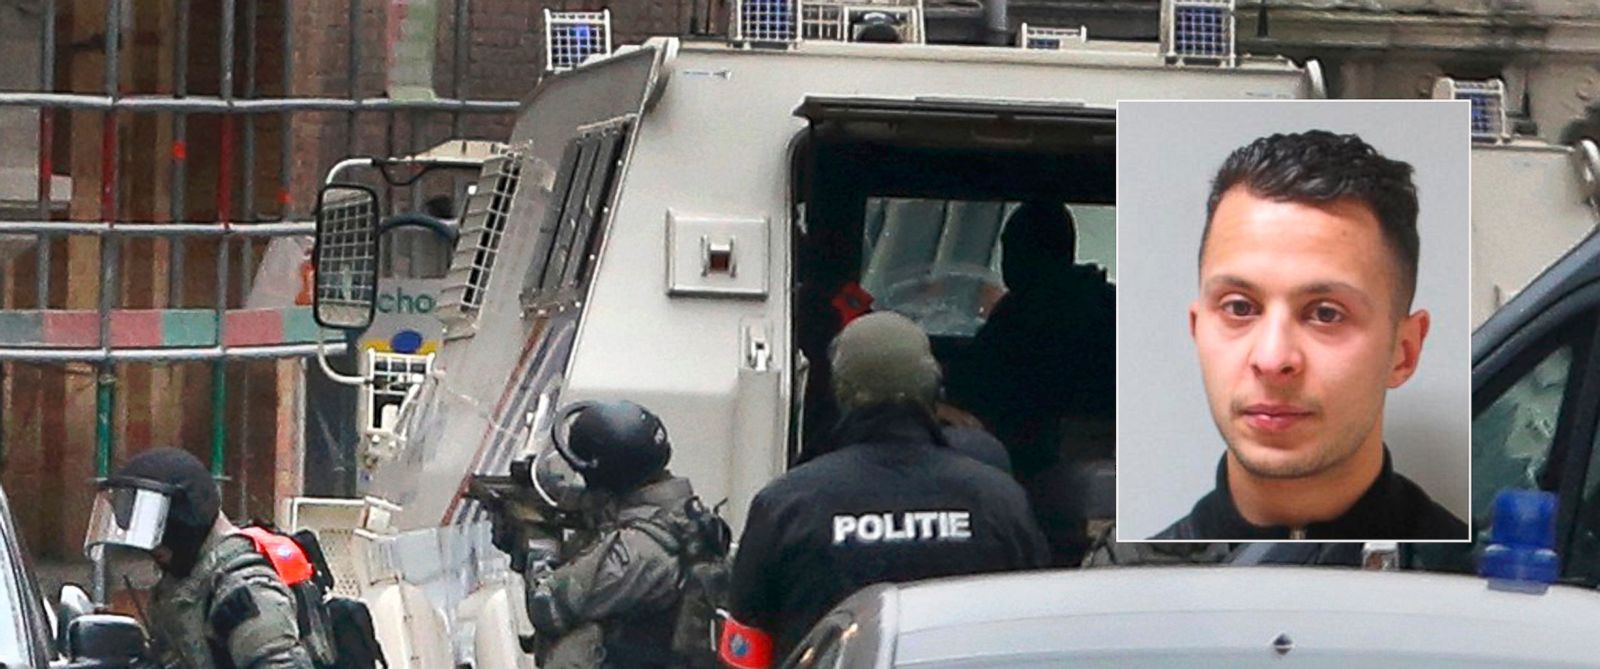 PHOTO: Police at the scene of a security operation in the Brussels suburb of Brussels, Belgium, March 18, 2016. A Belgian Federal Police photo shows 26-year old Salah Abdeslam, who police believe took part in the recent terror attacks in Paris.